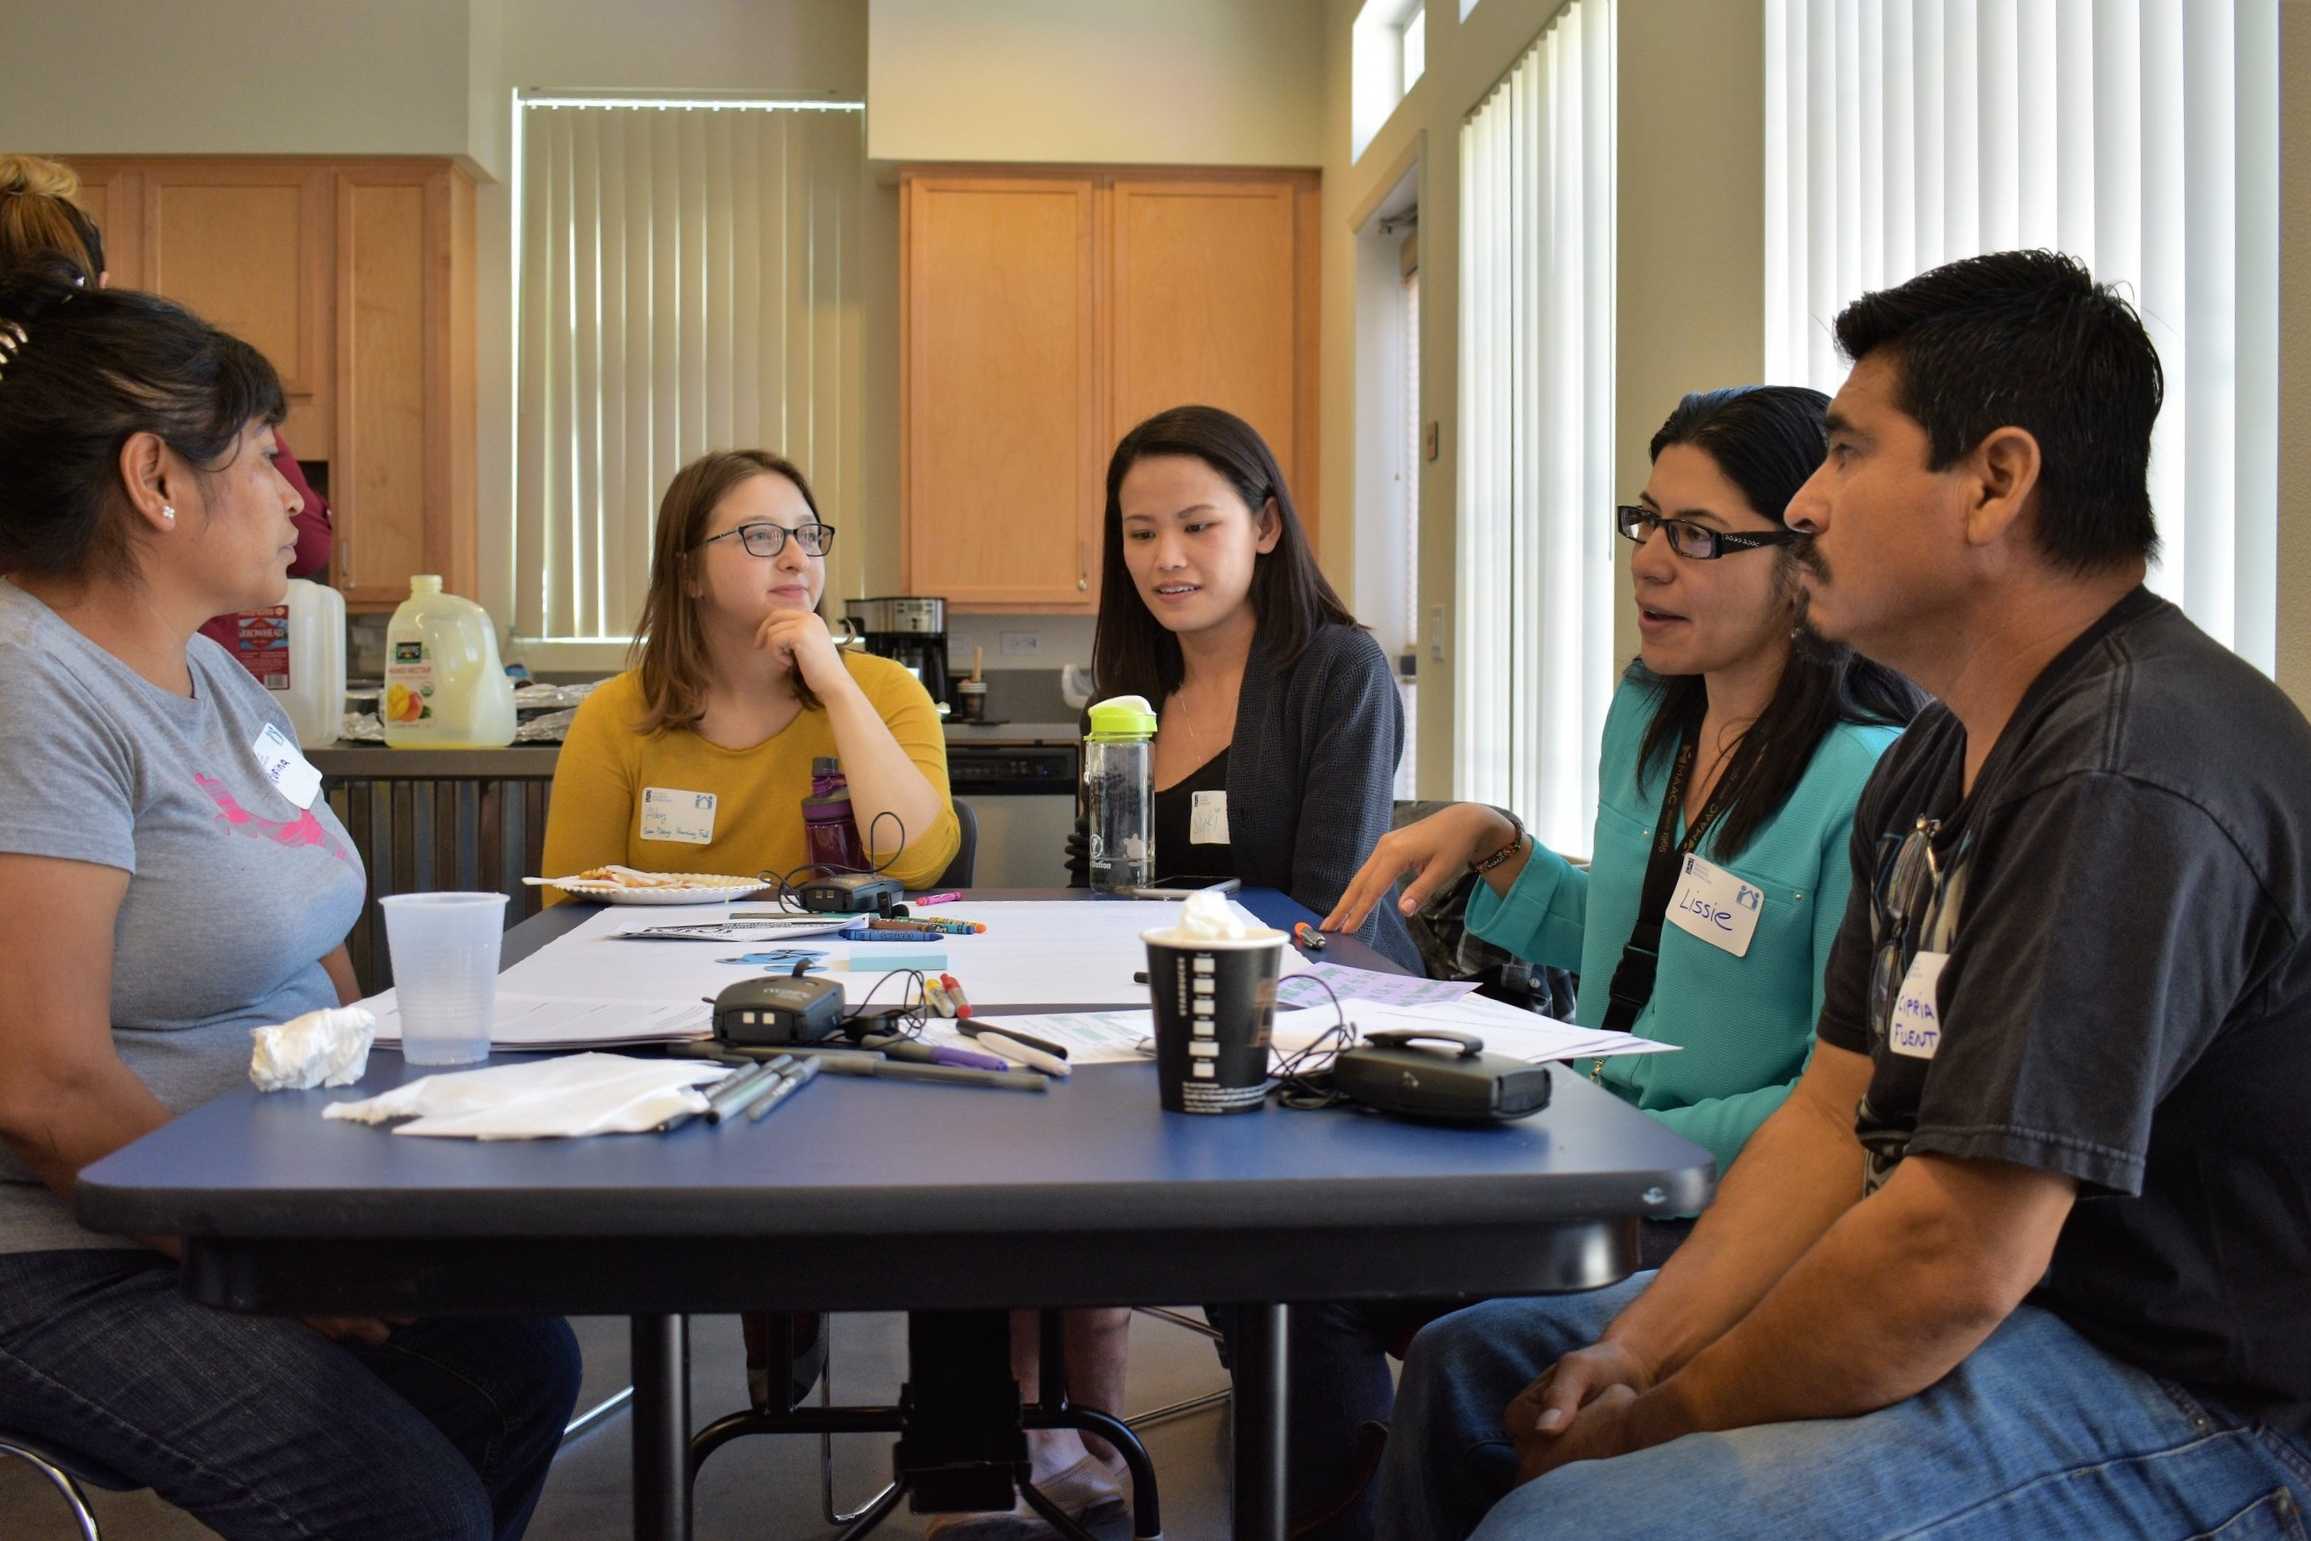 Residents Discussing Priority Housing Issues at Regional Convening, Sept 2018